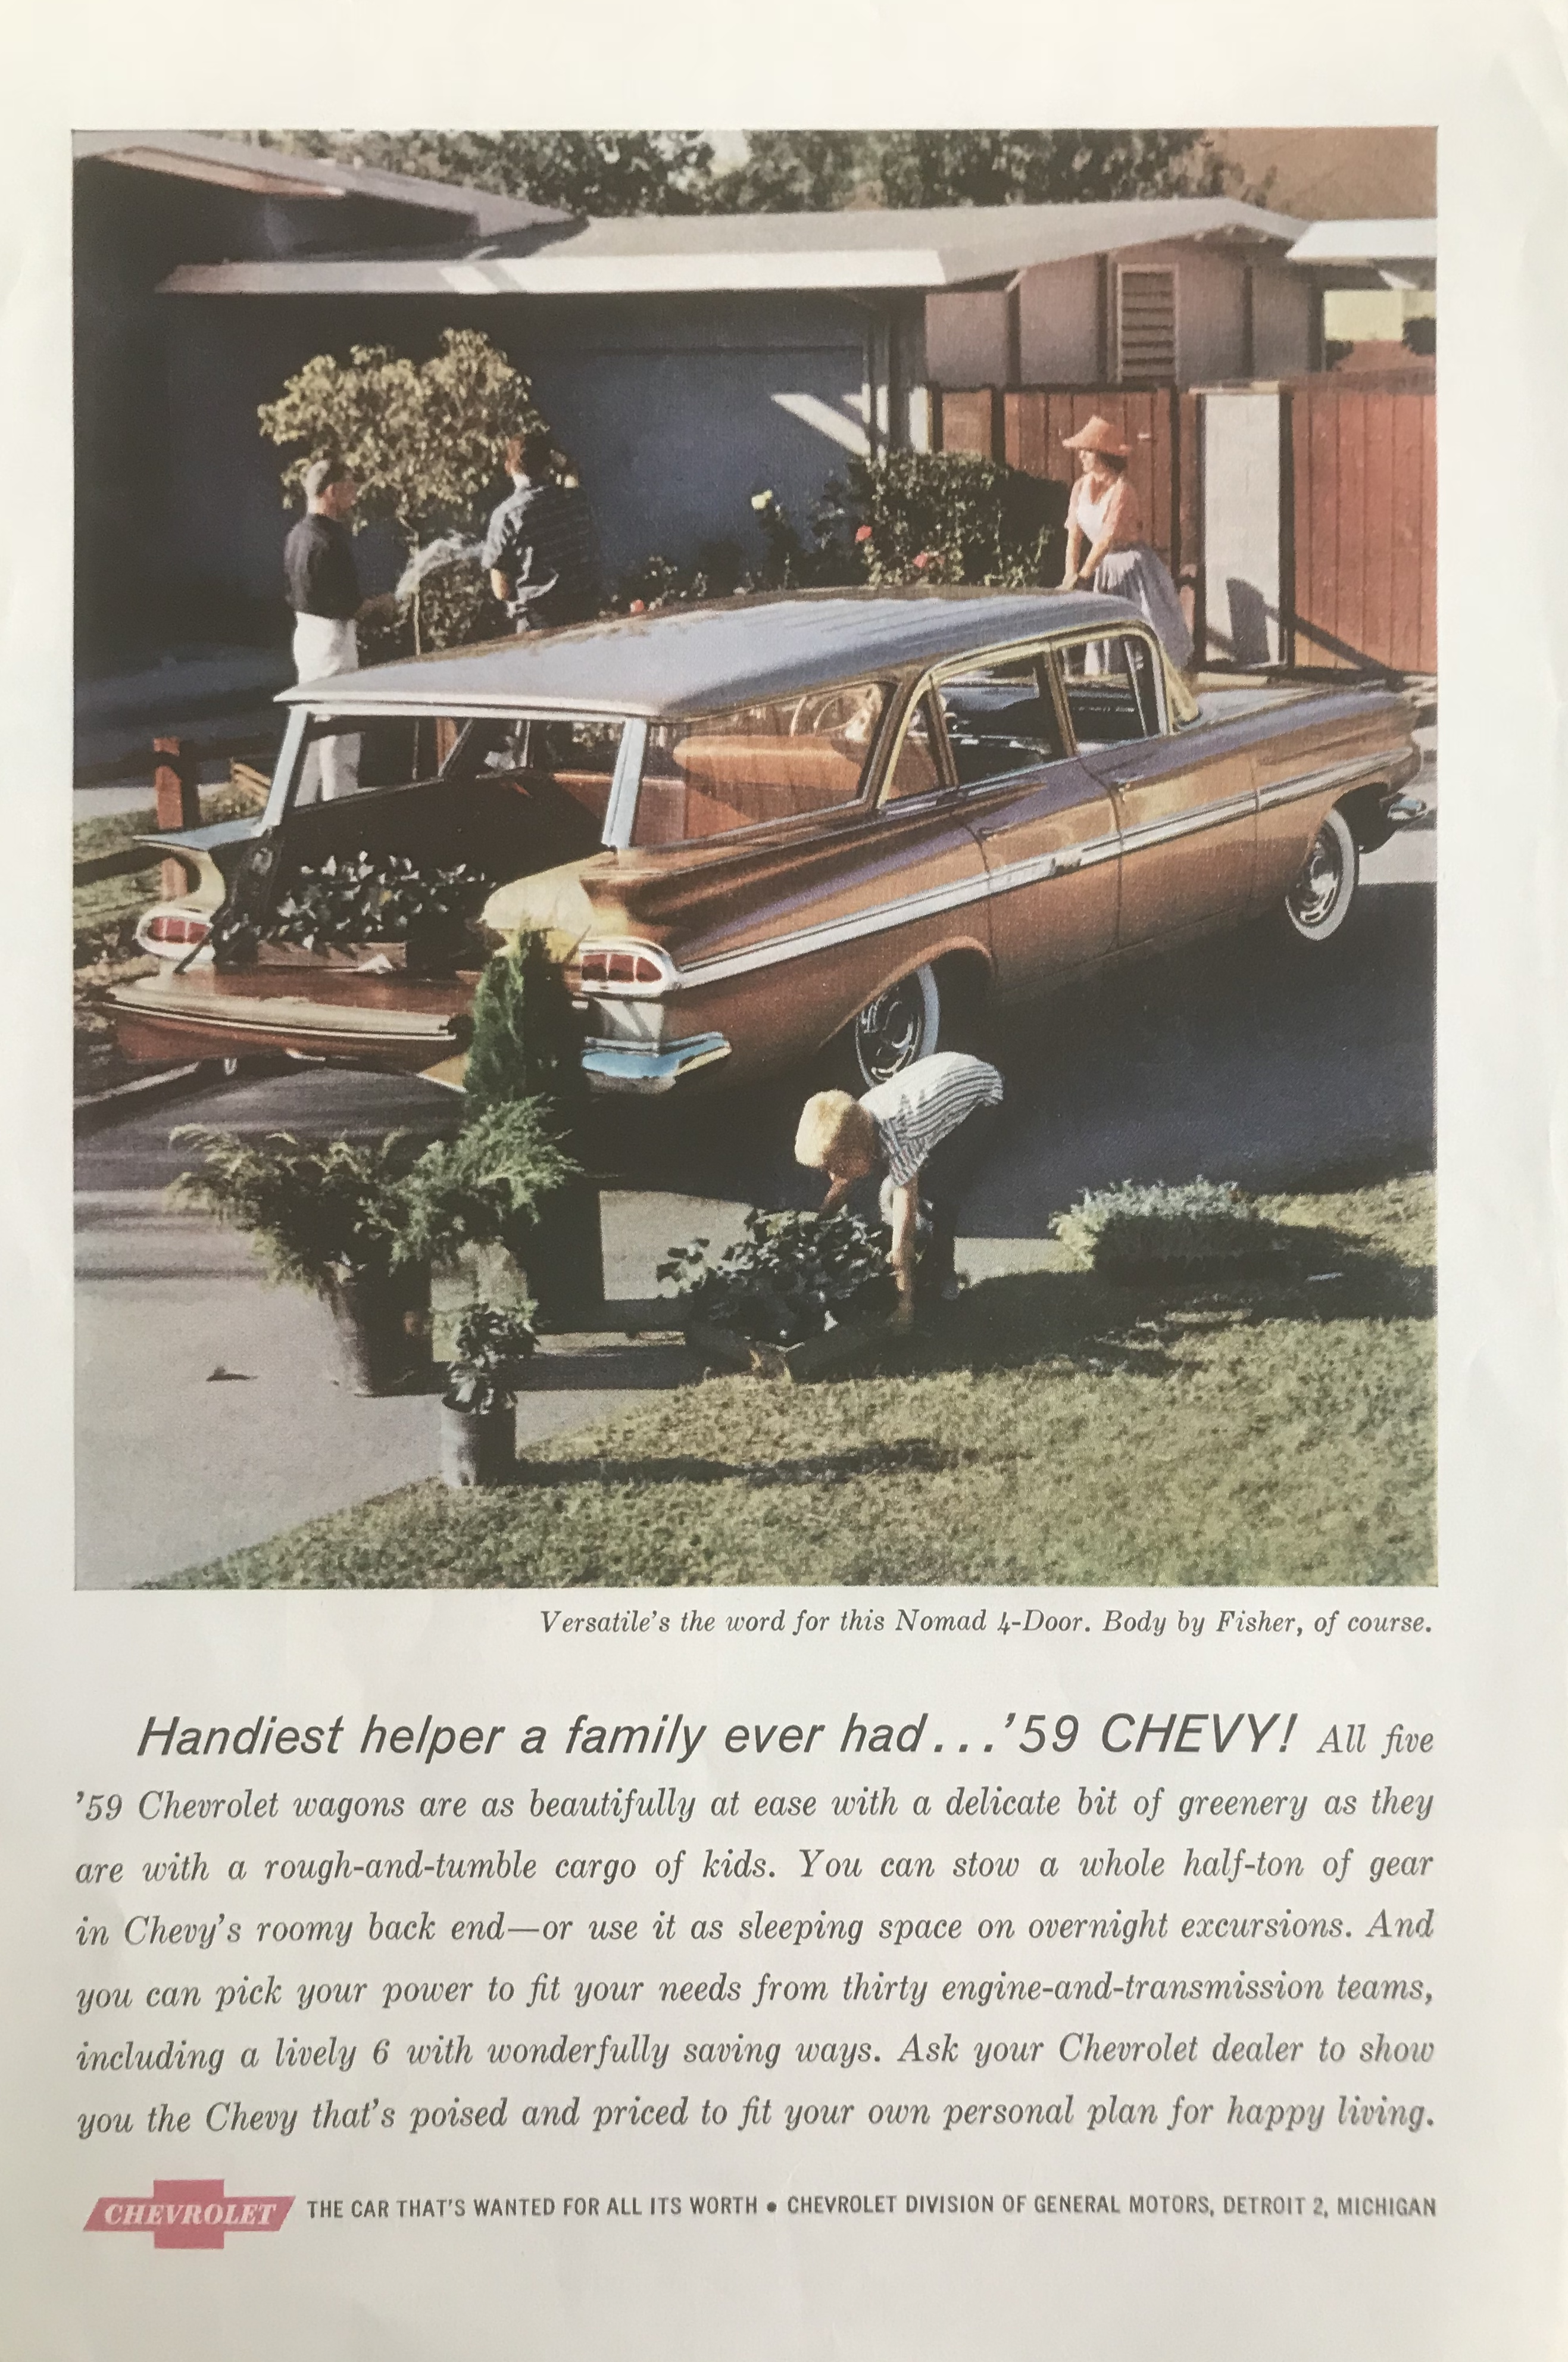 1959 Chevrolet Nomad 4-Door